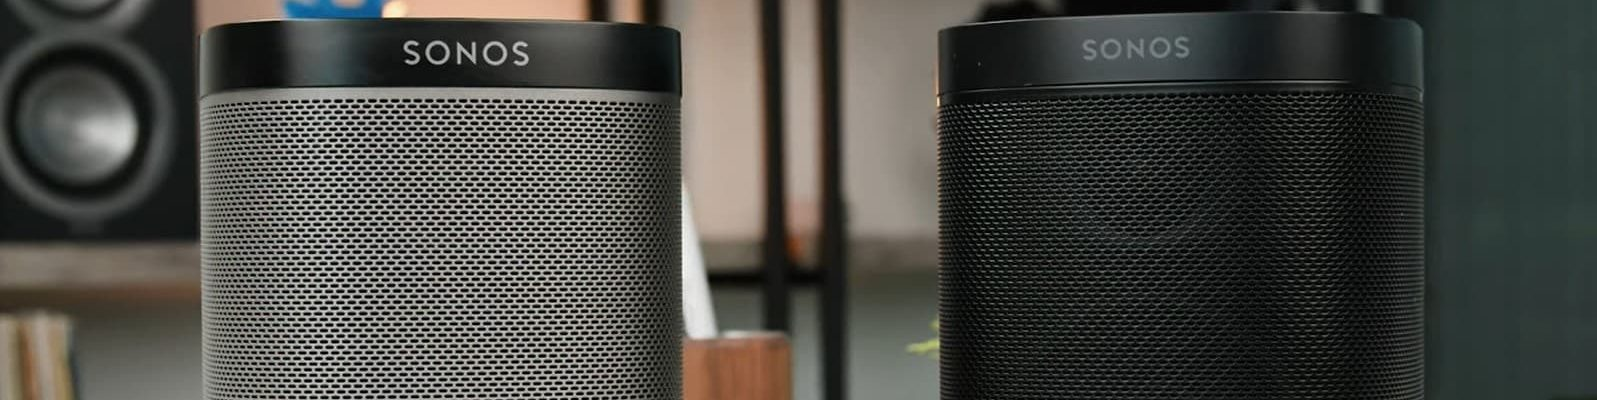 Sonos One vs Play 1 - Which is Best? 1